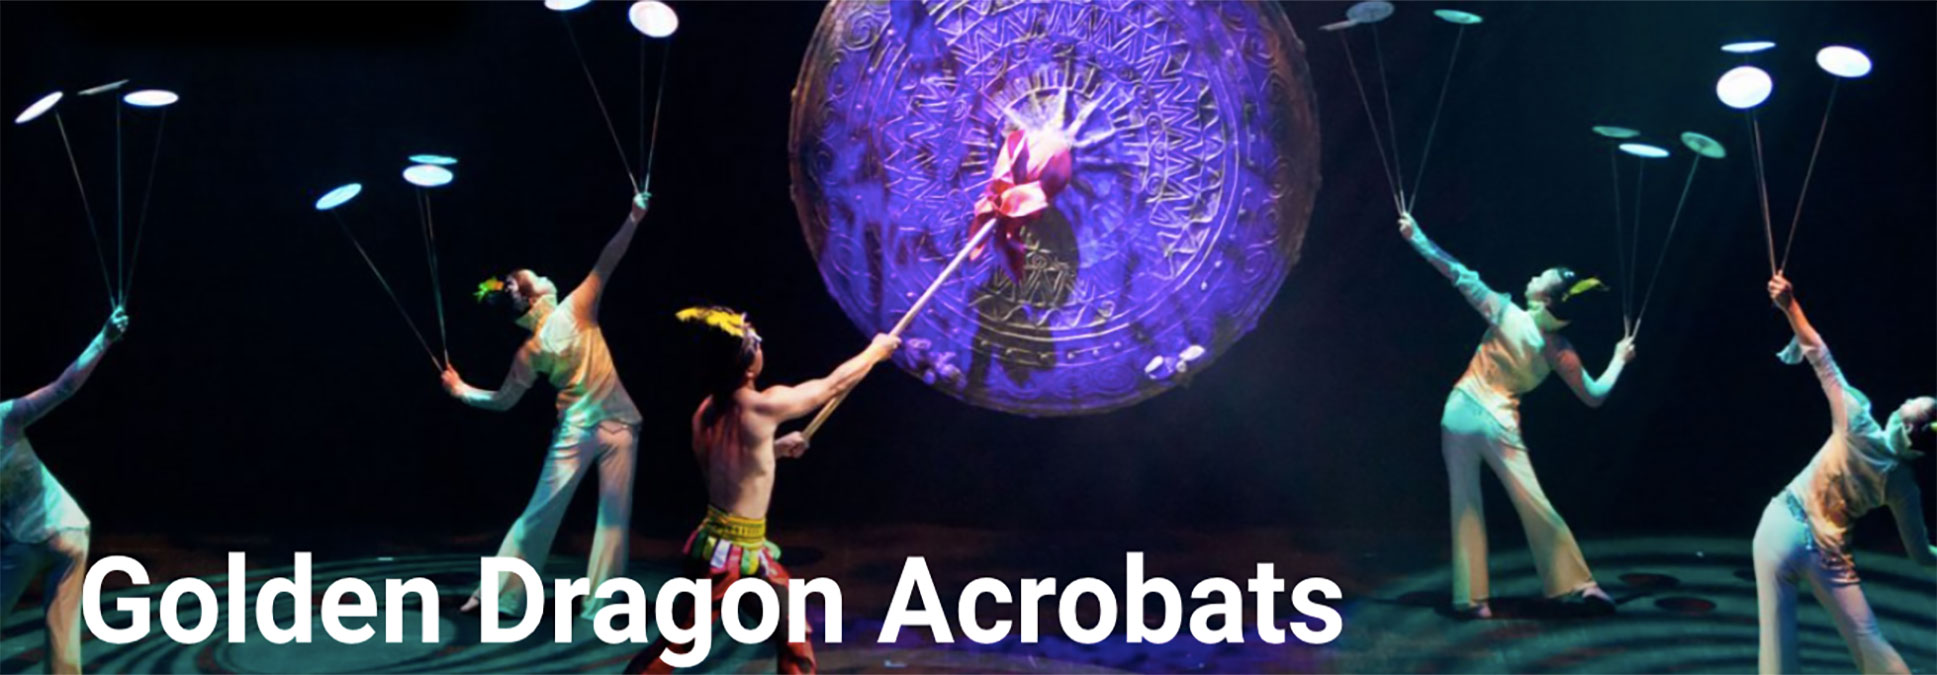 Golden Dragon Acrobats at the Marcus Performing Arts Center